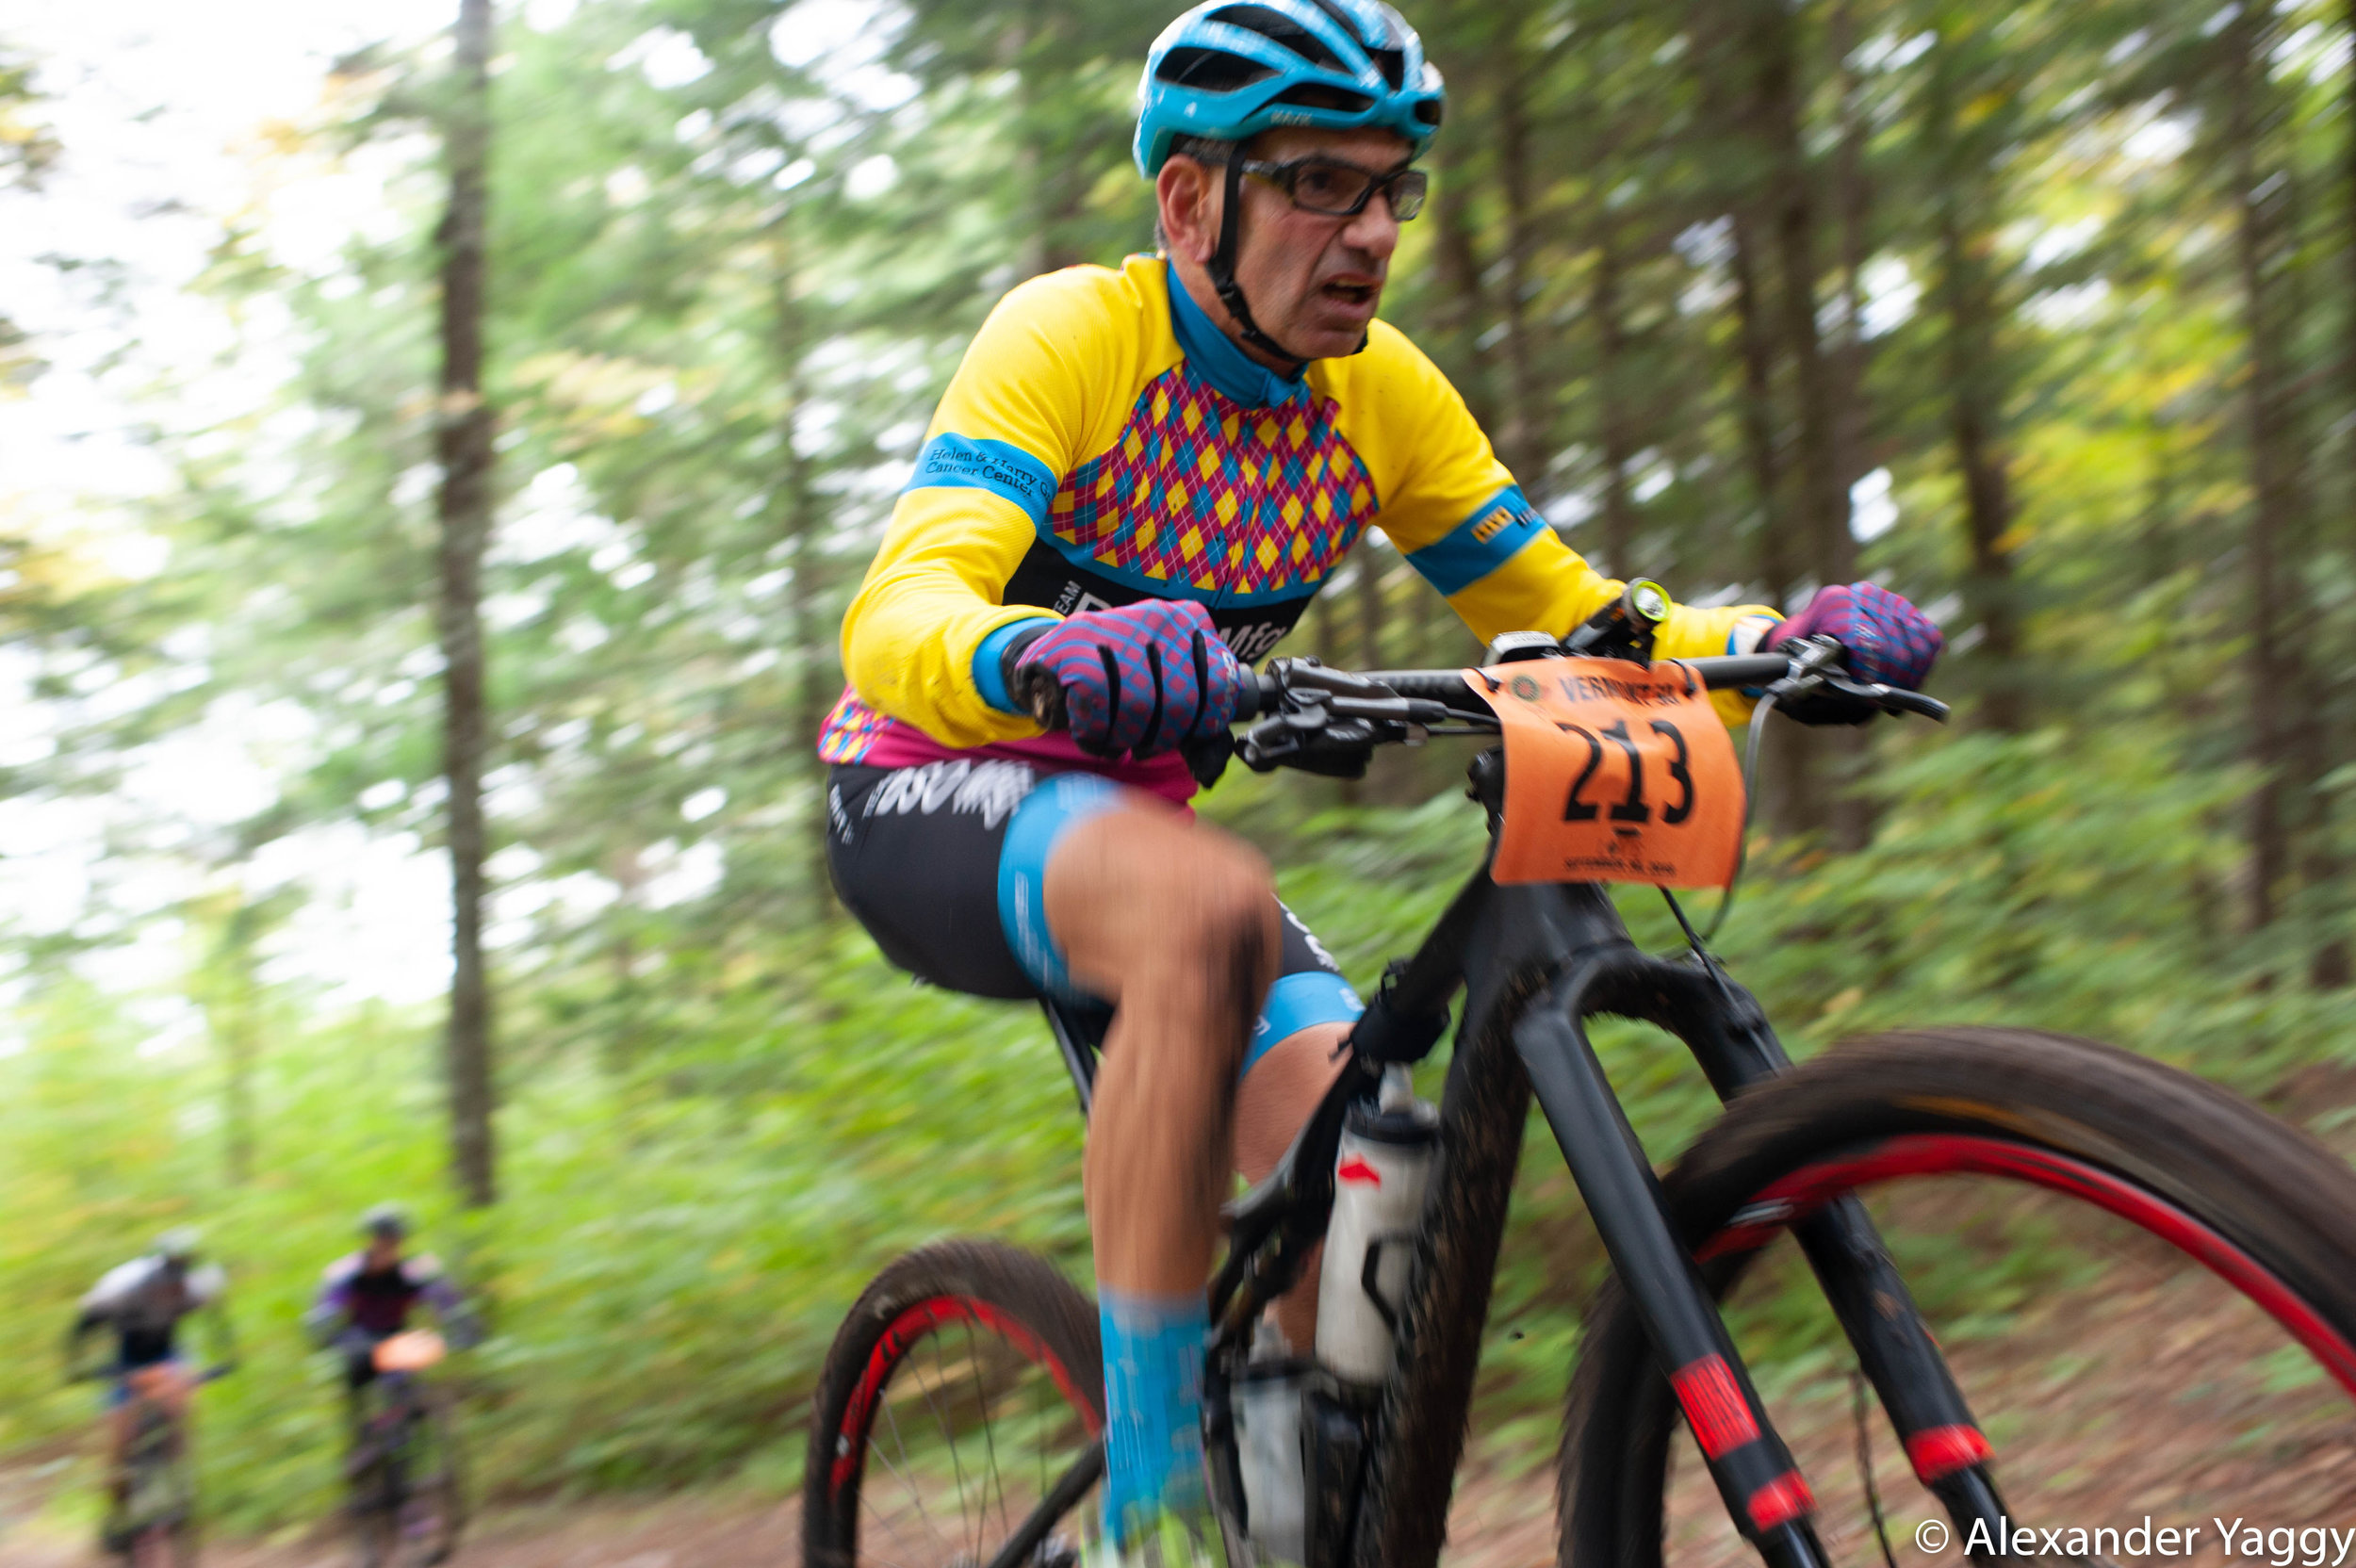 Every uphill is an opportunity to gain as this gentleman dusts some younger riders.